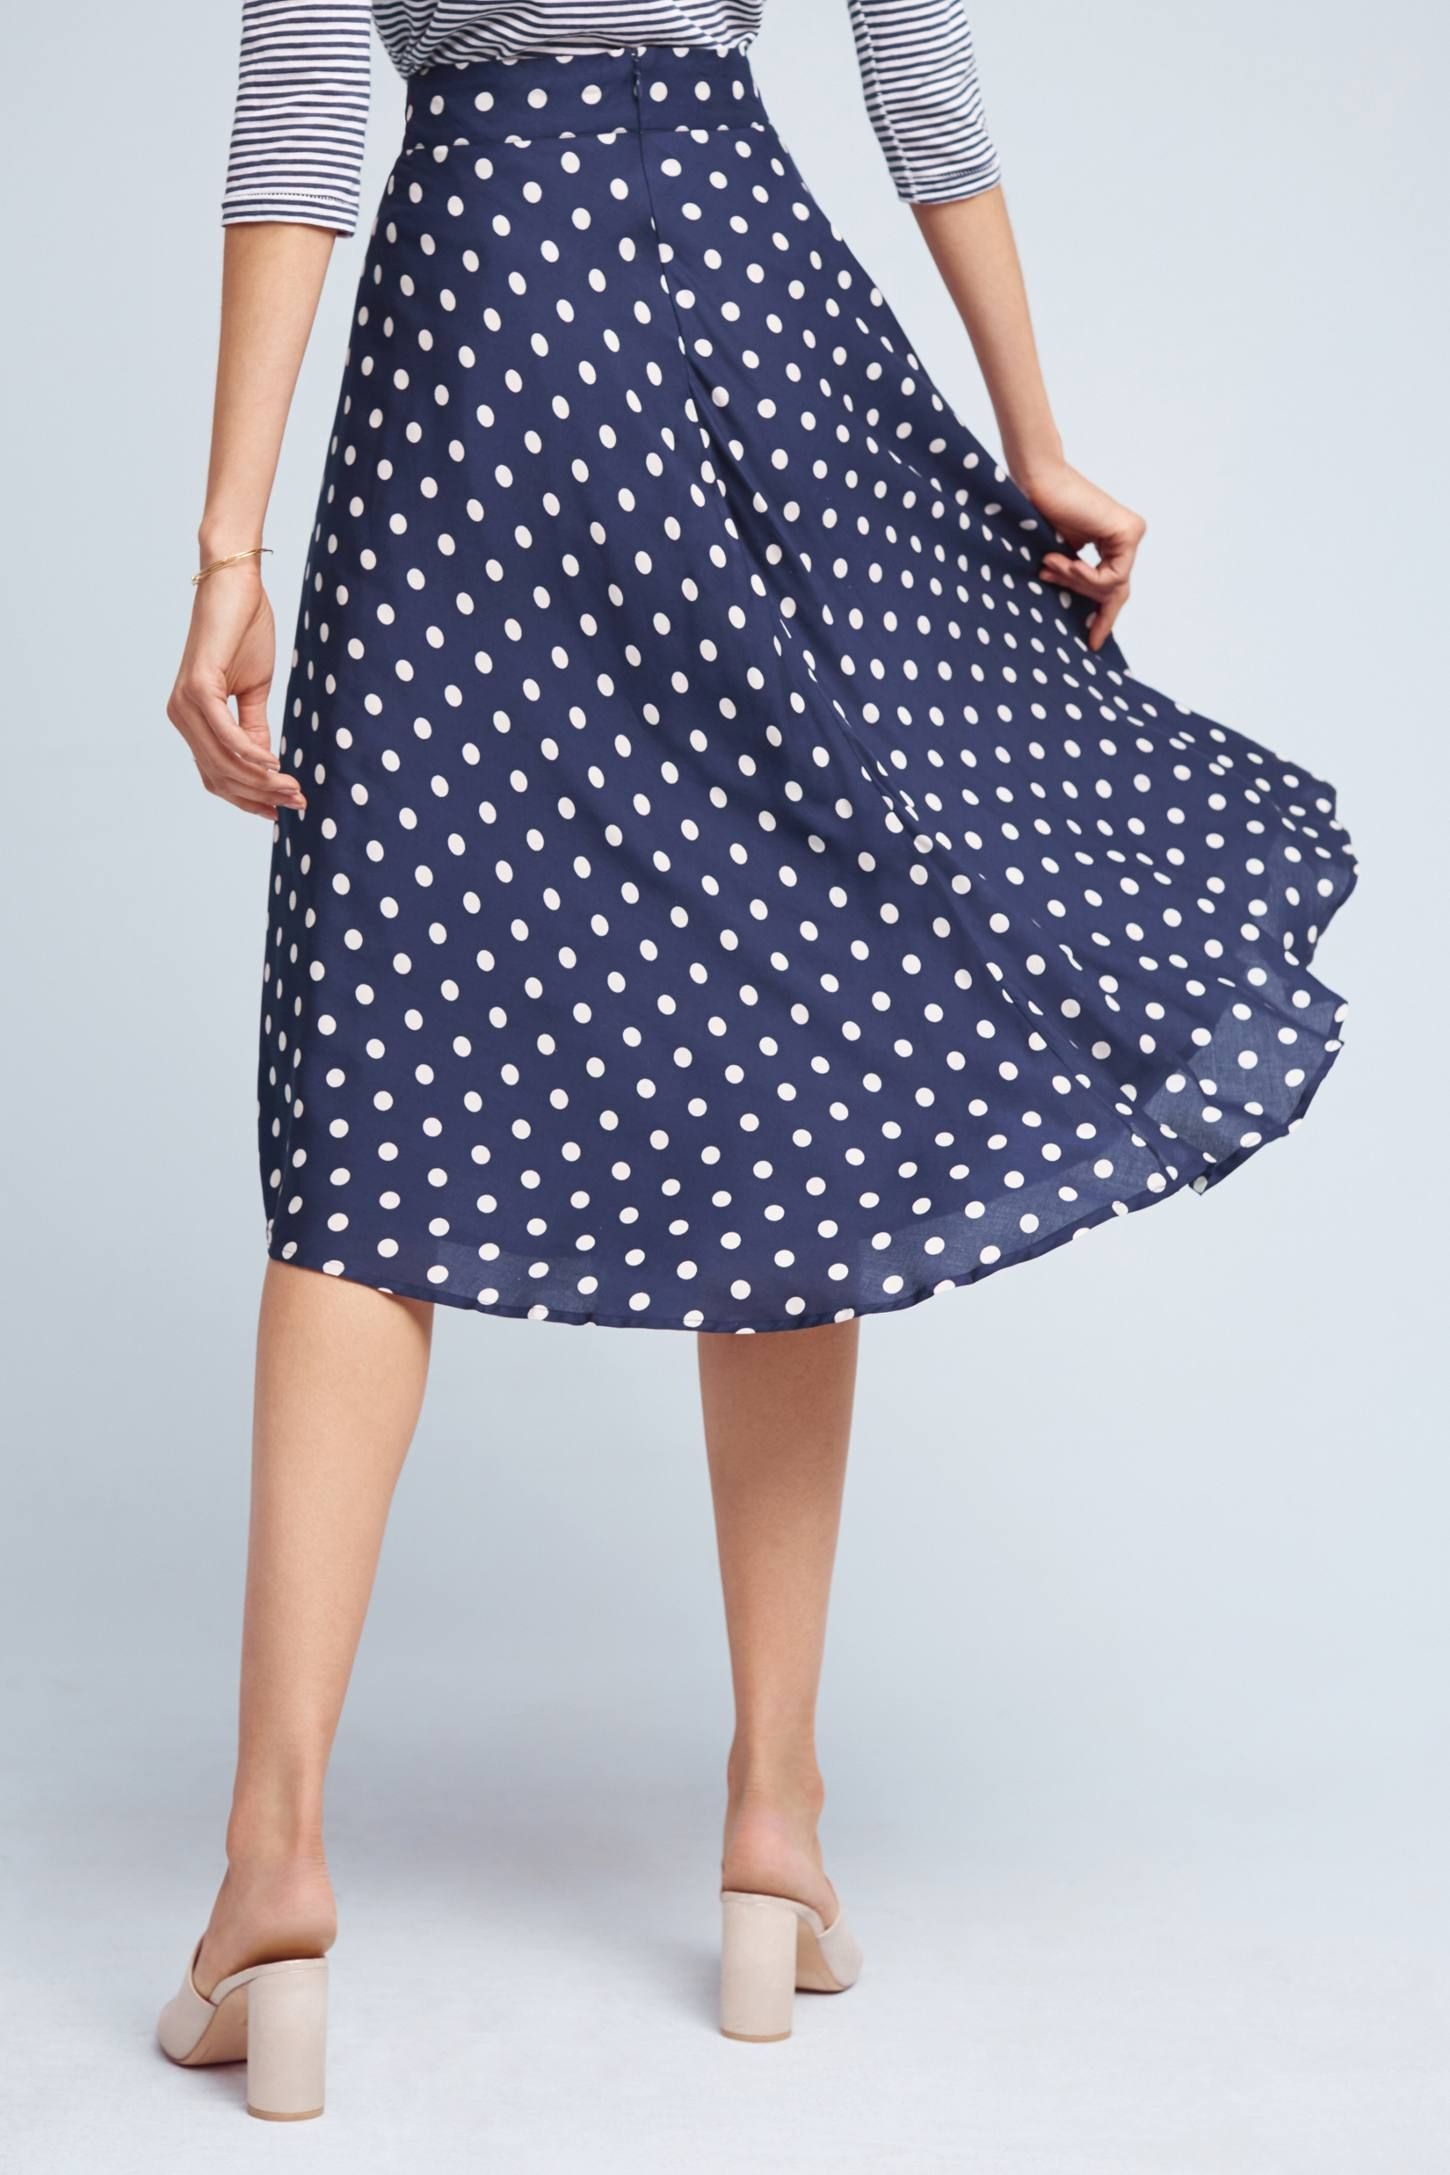 Tandy Skirt, Can Navy be my monochrome palet? Because I have/like a lot of navy. Often with polka dots now that I think of it. Anthropologie 118$